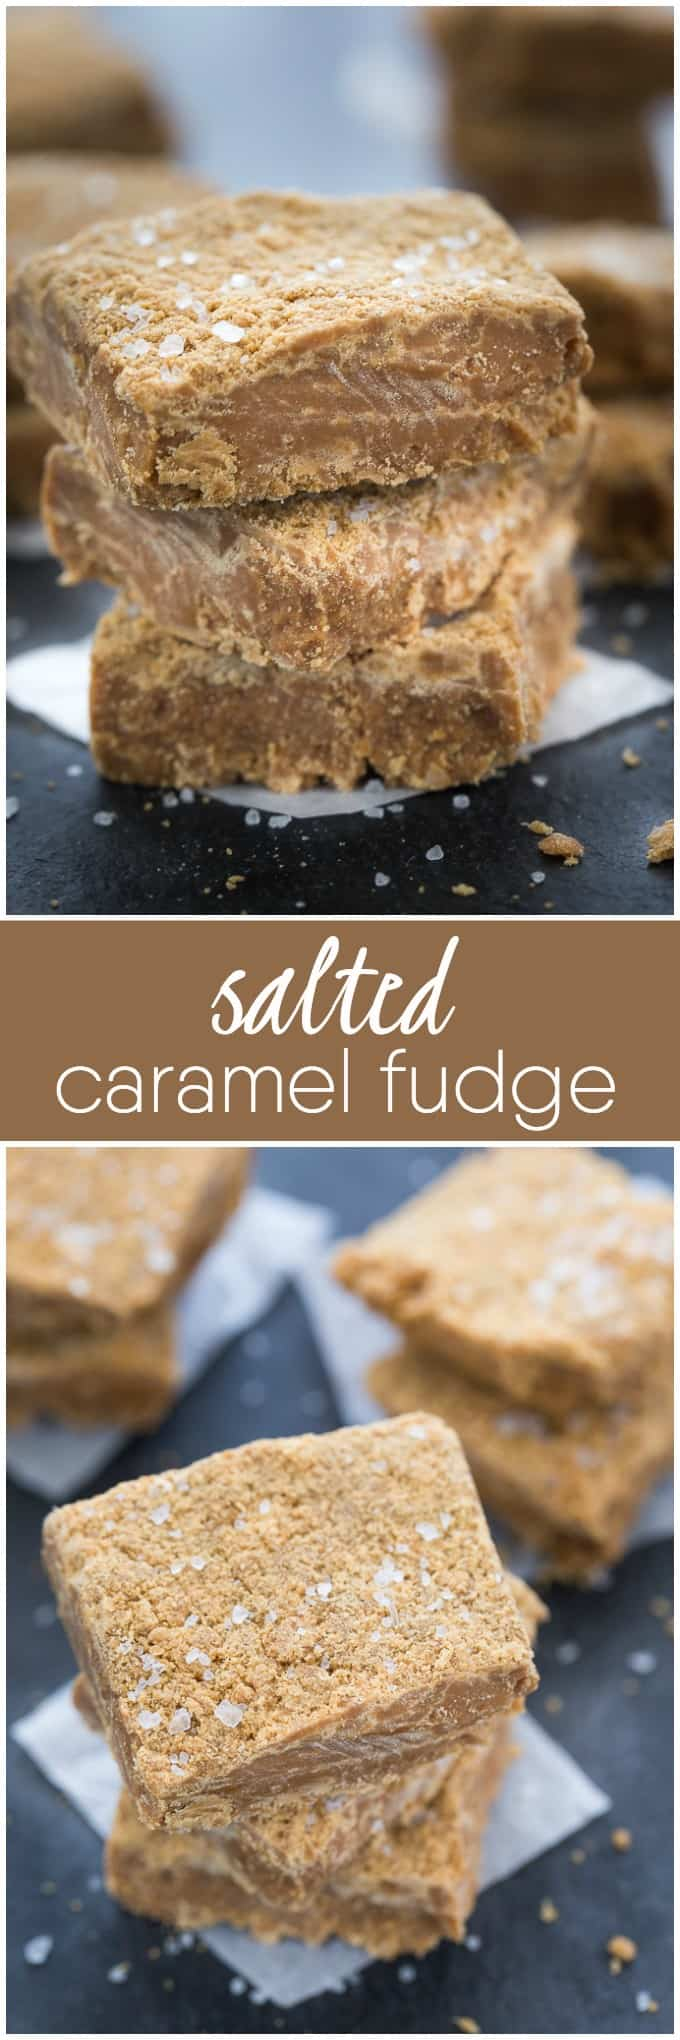 Salted Caramel Fudge - Simply Stacie